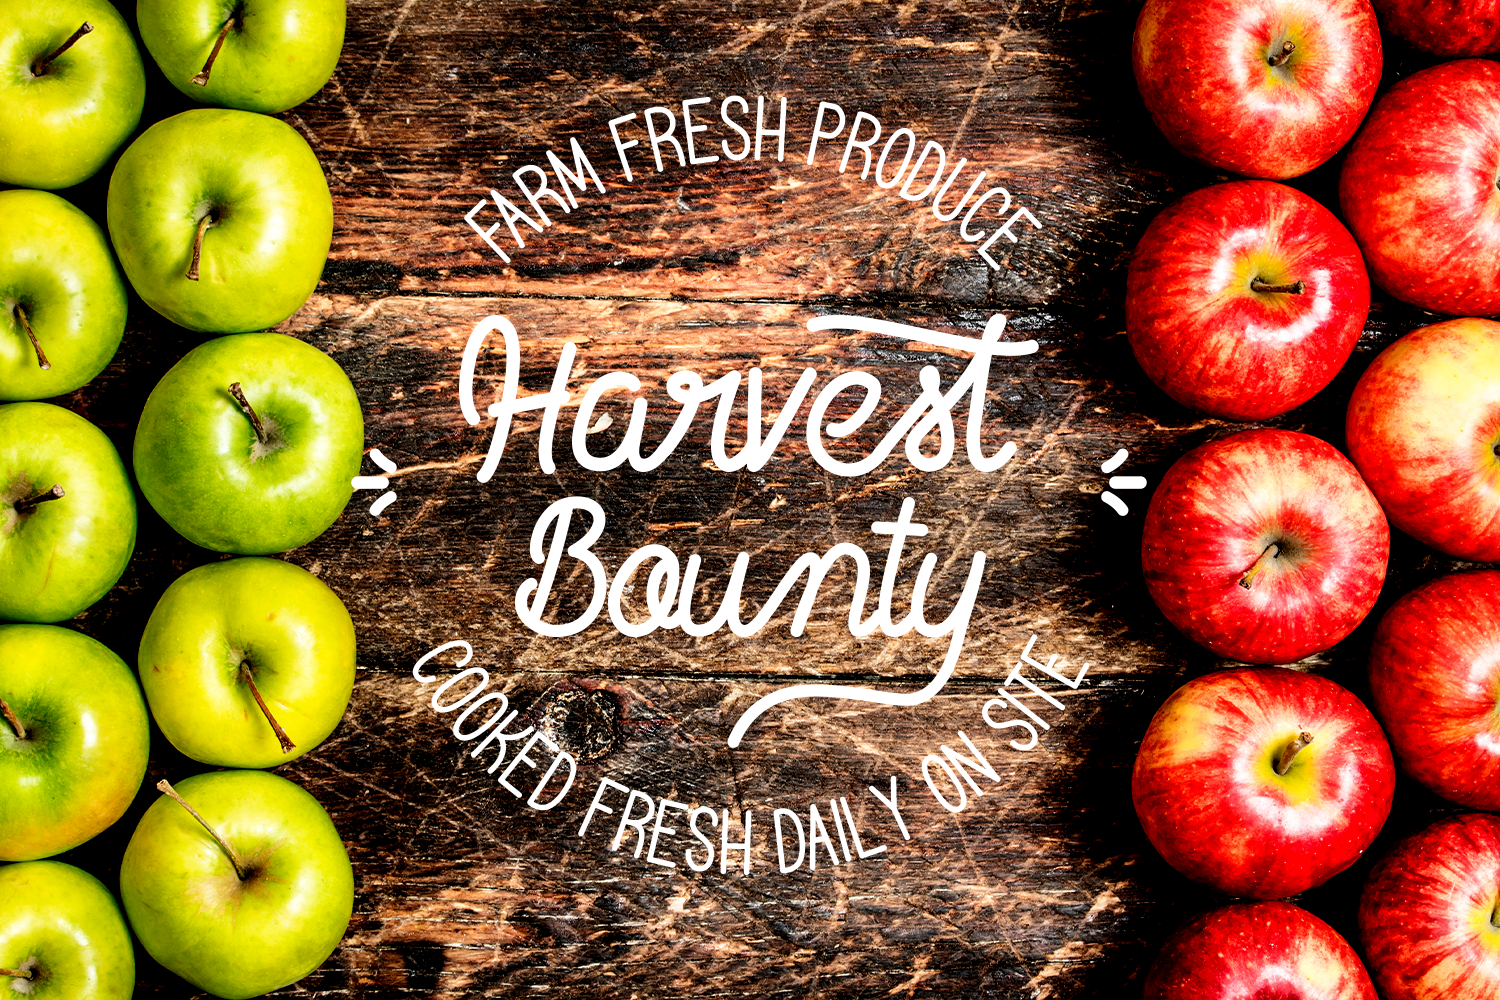 6harvest bounty logo